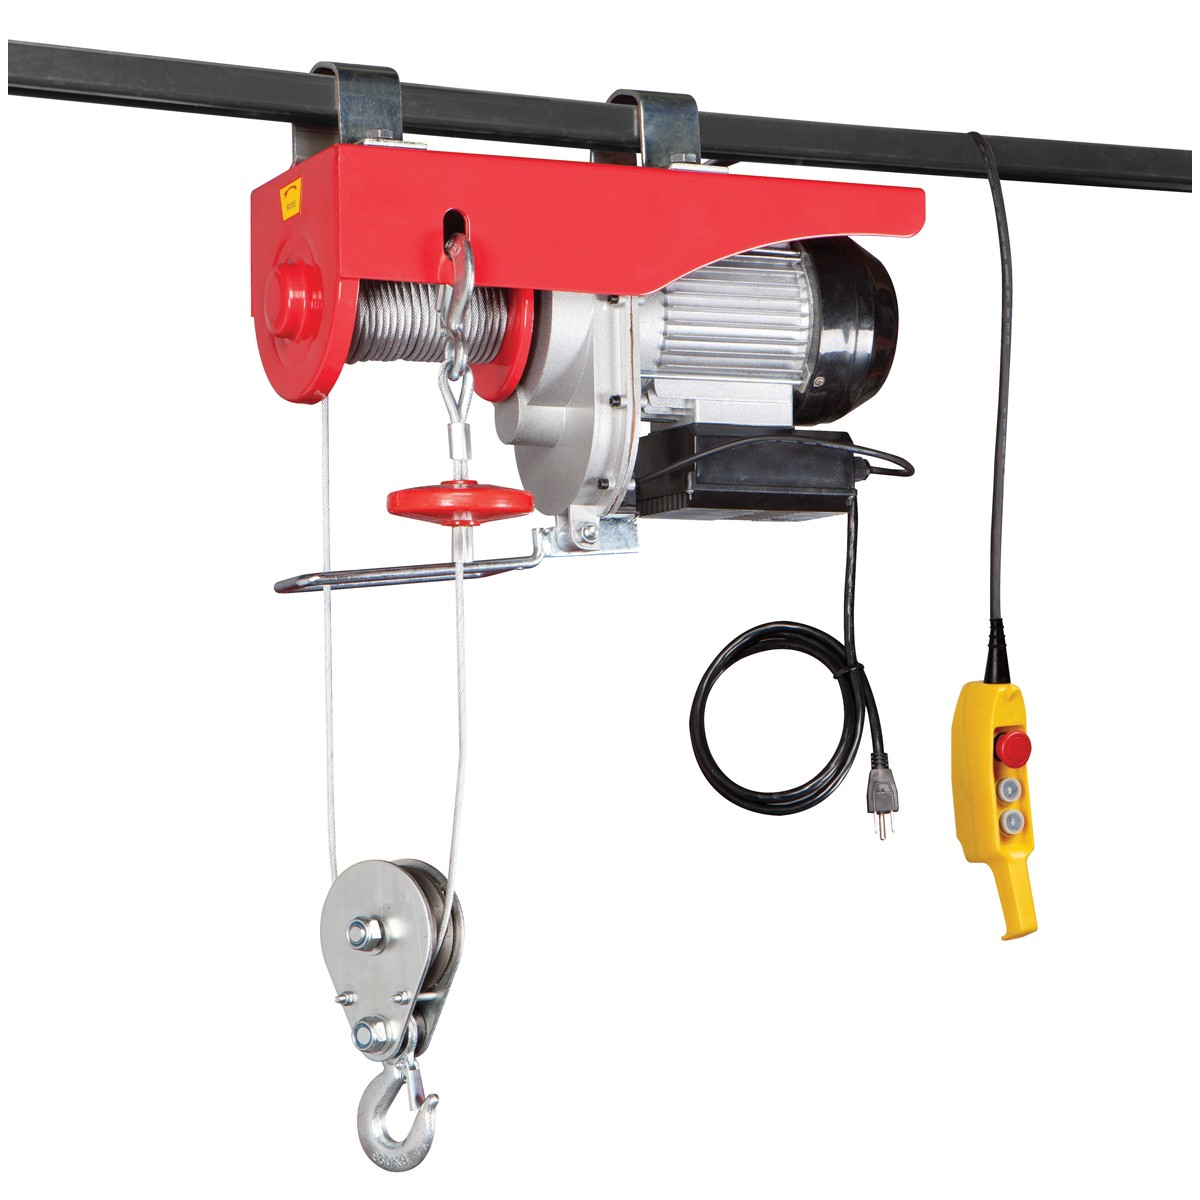 Remote Control Electric Hoist Wiring Diagram Online Circuit Pa600 Mini Winch Buy 12m Pa800 Rh Alibaba Com